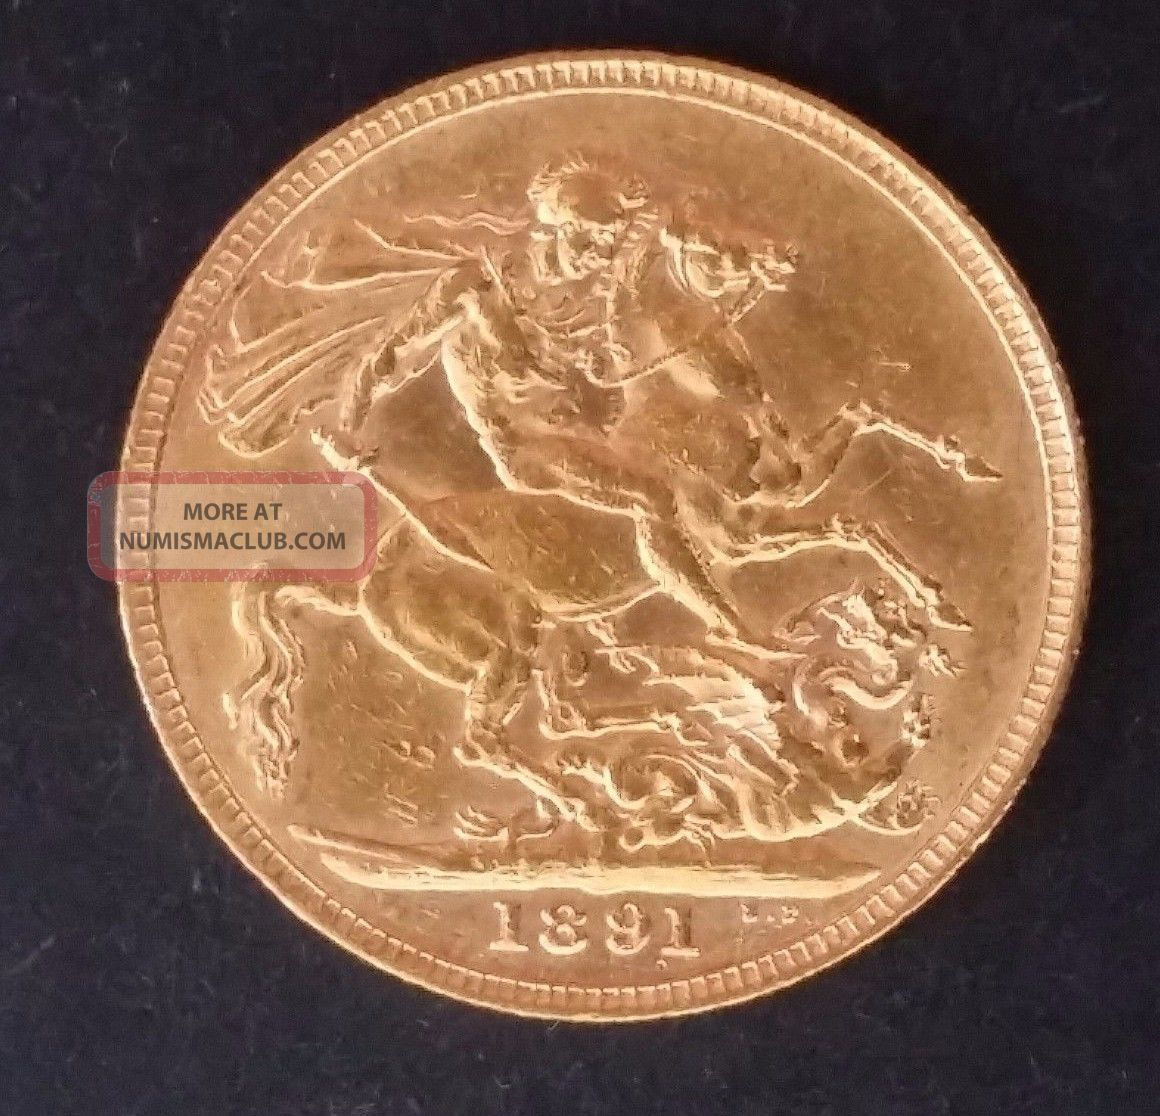 1891 Great Britain One Sovereign Gold (. 916) Coin Queen Victoria Europe photo